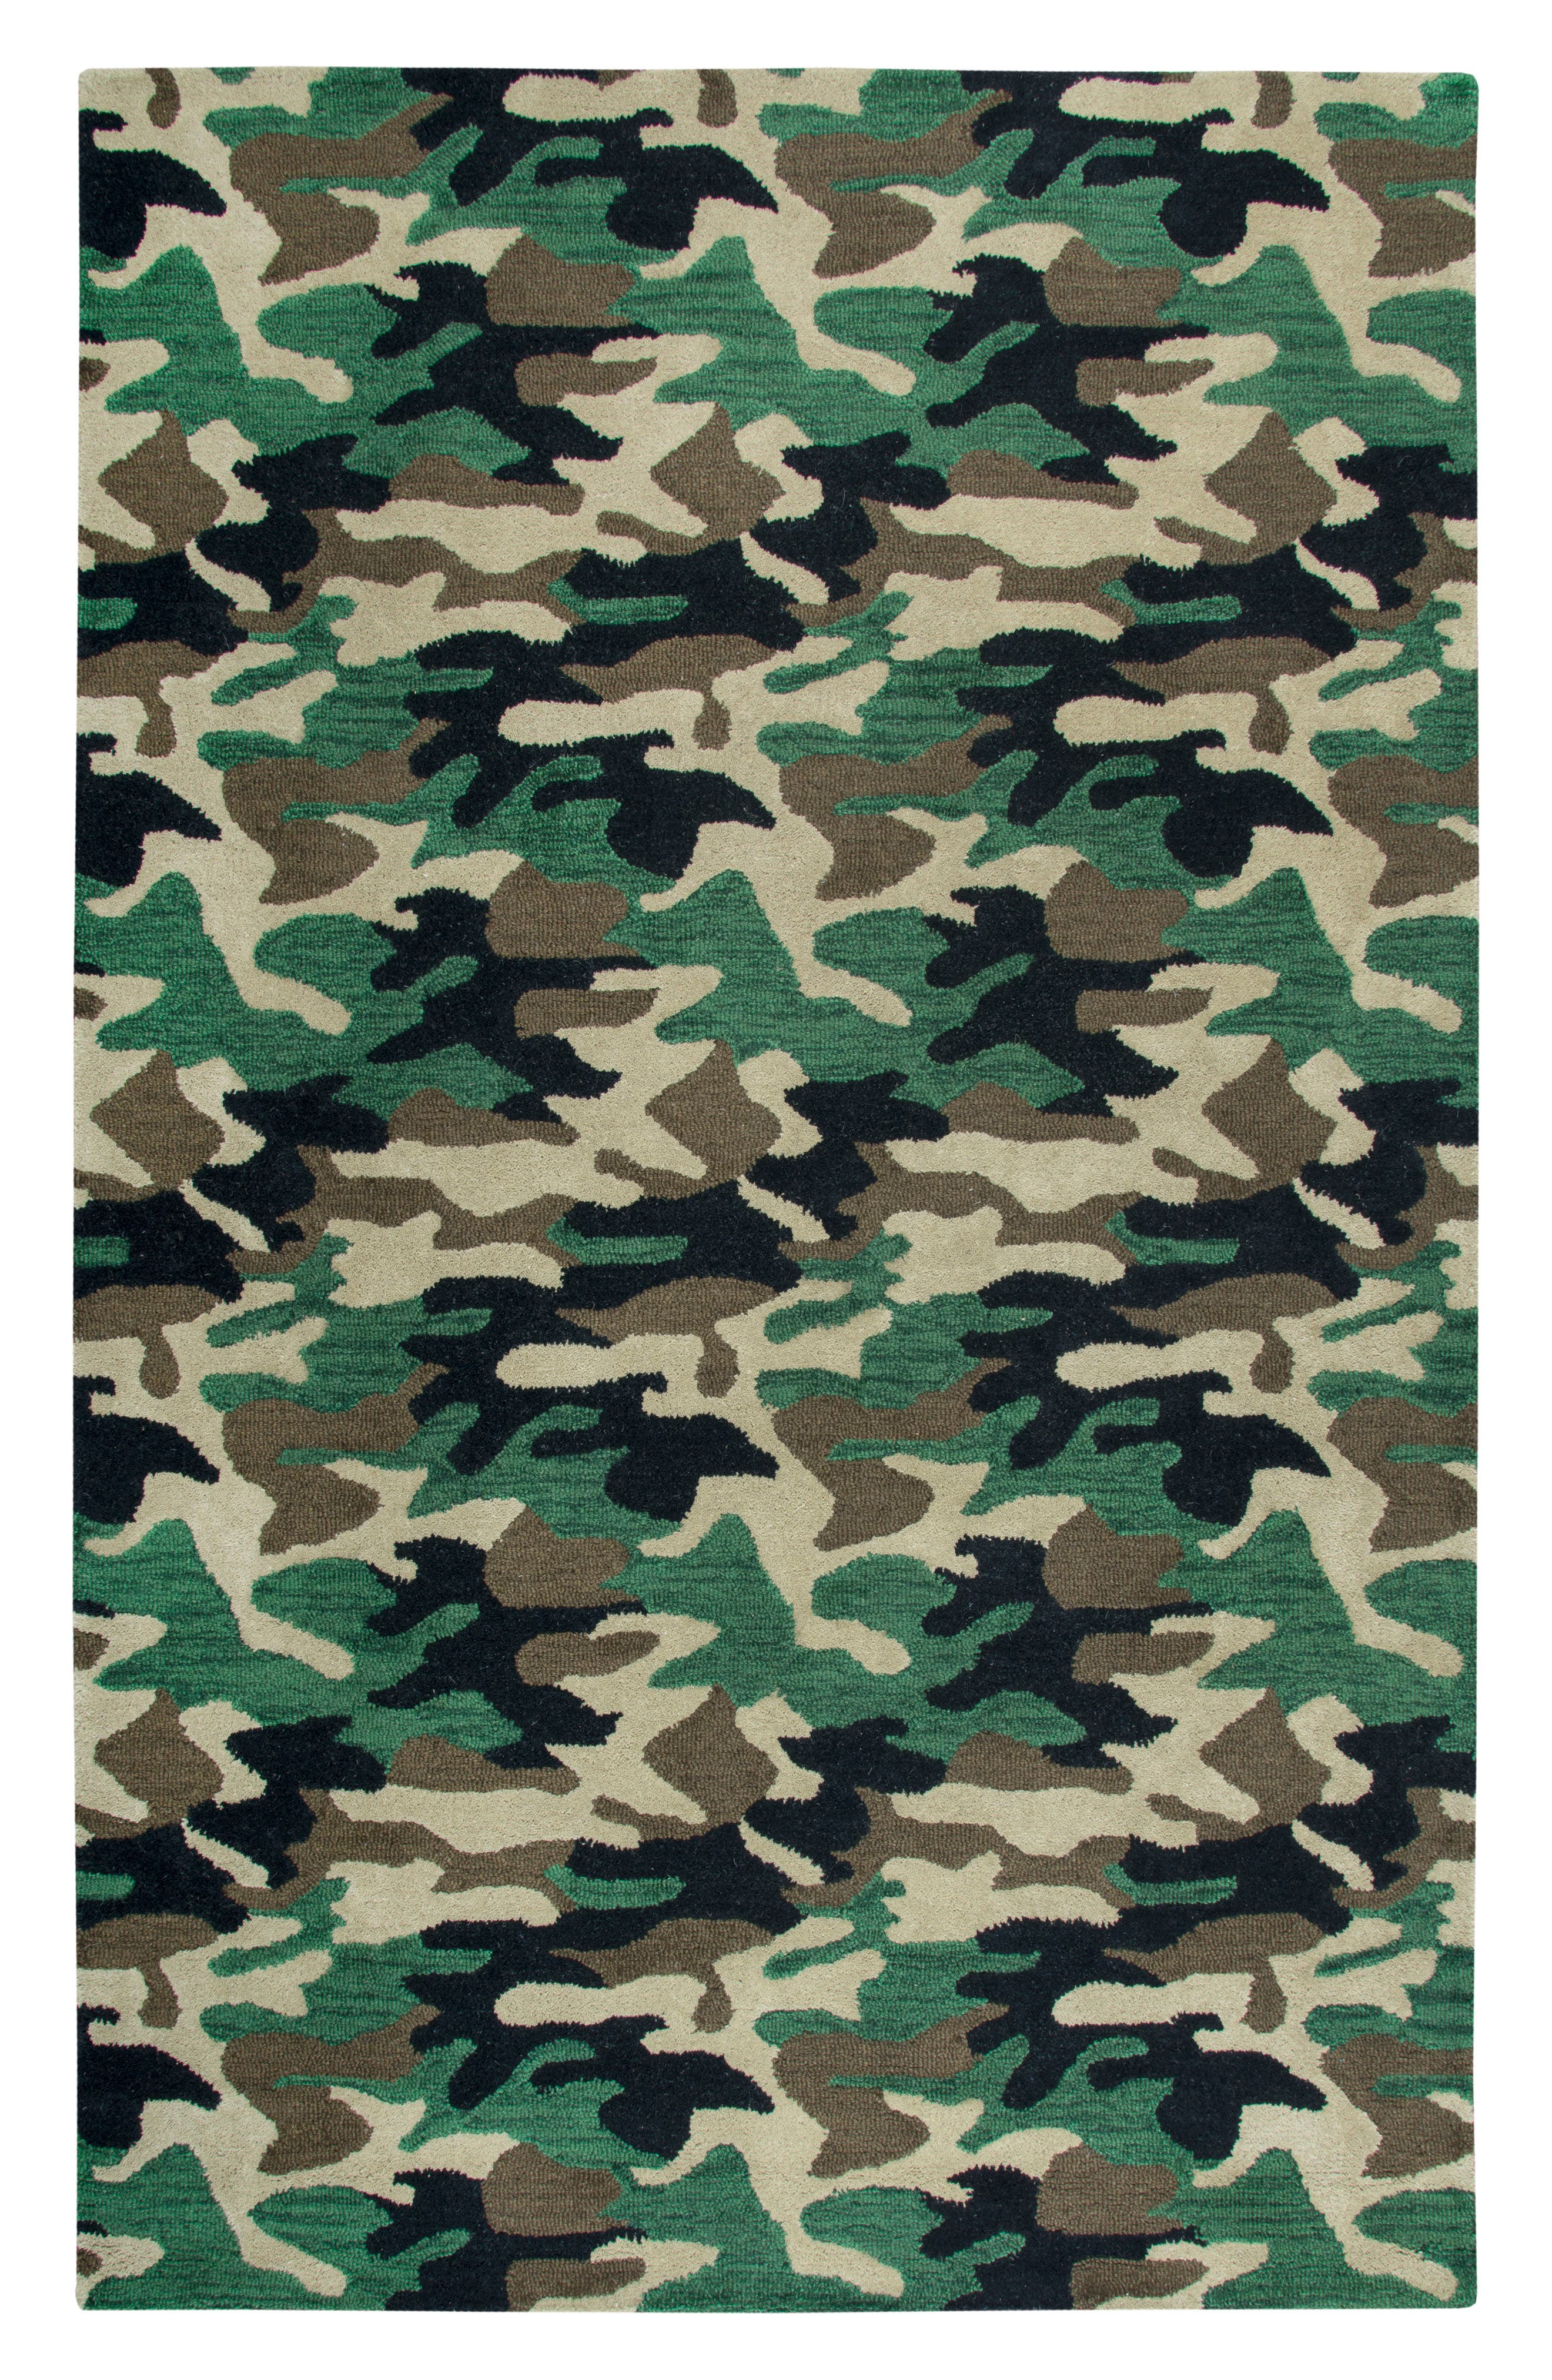 Play Day Camouflage Rug,                             Main thumbnail 1, color,                             300